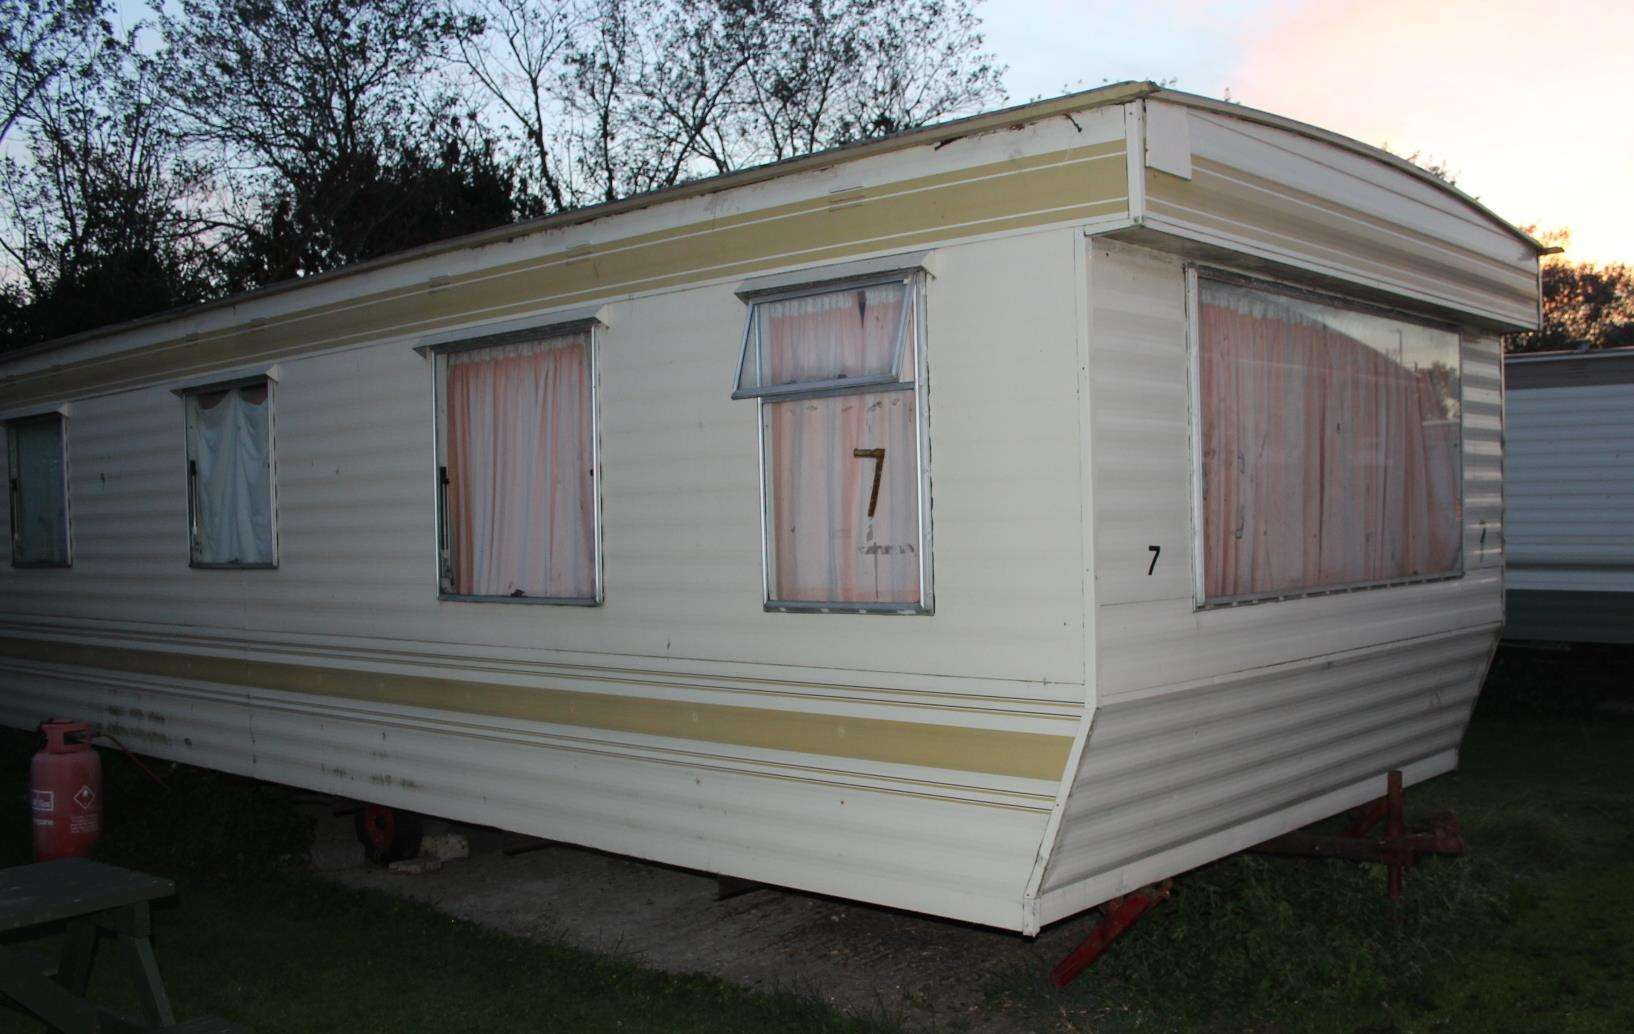 Caravan at Seabreeze park, Sheerness, where Anne McManus lived (4669143)